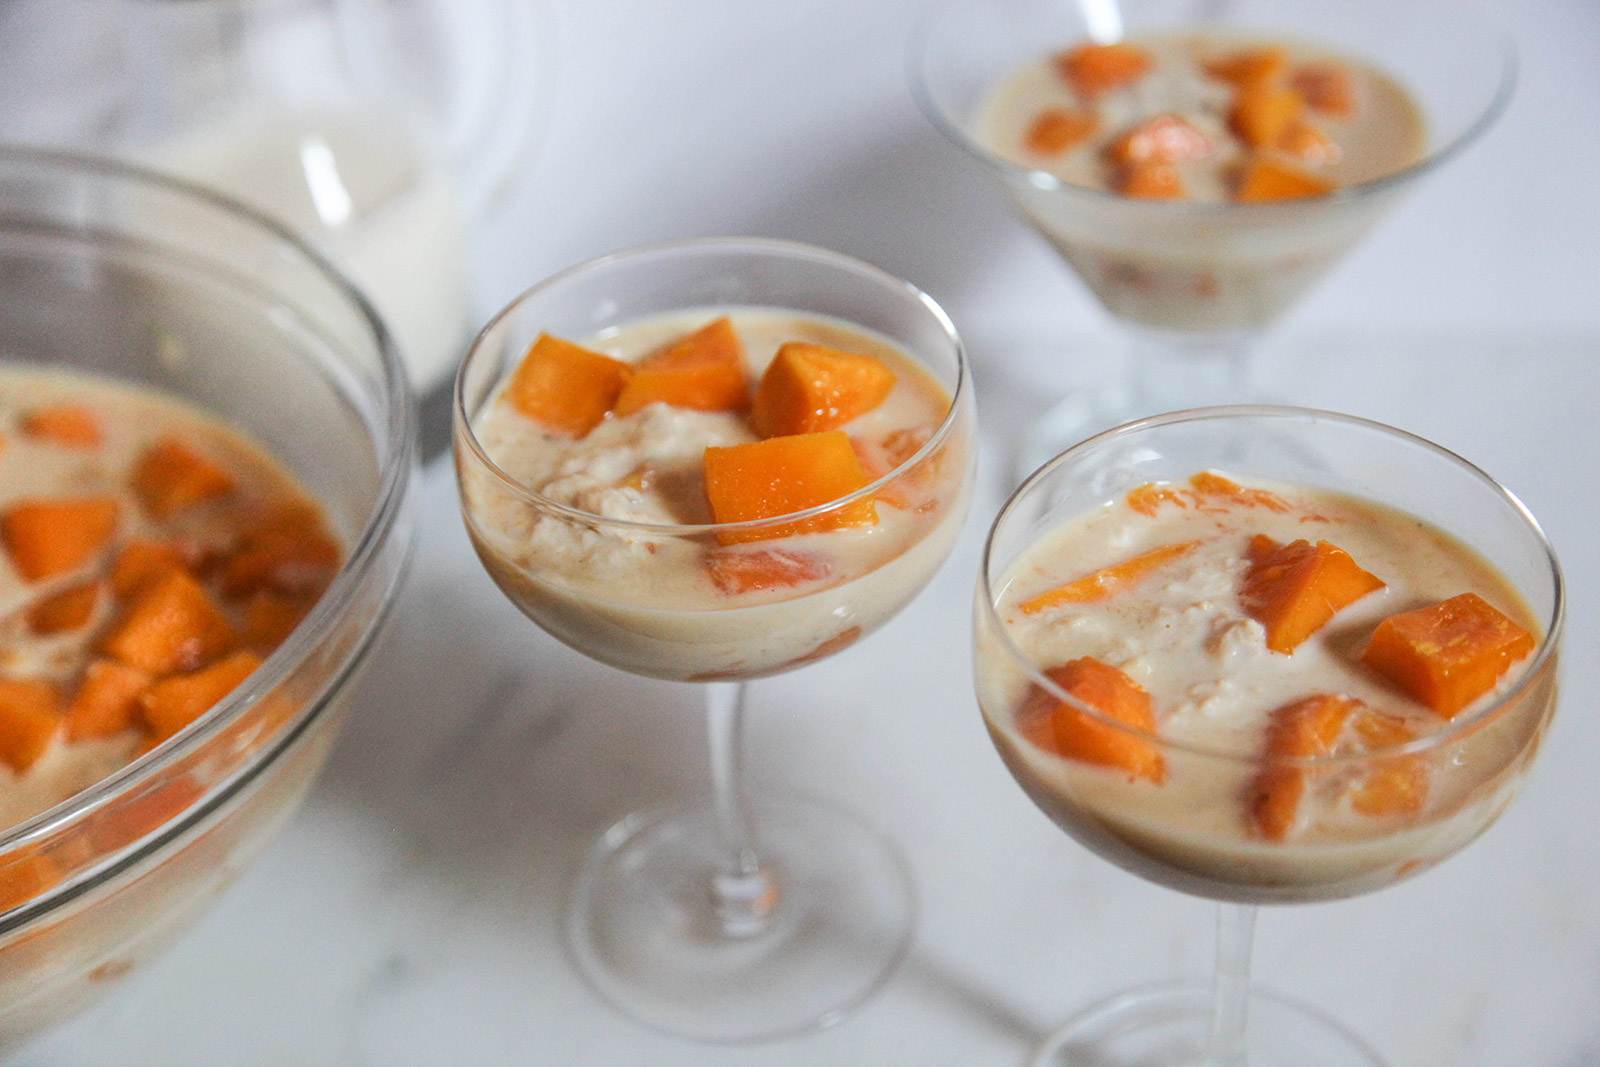 simple dessert of sweet mango in creamy milk